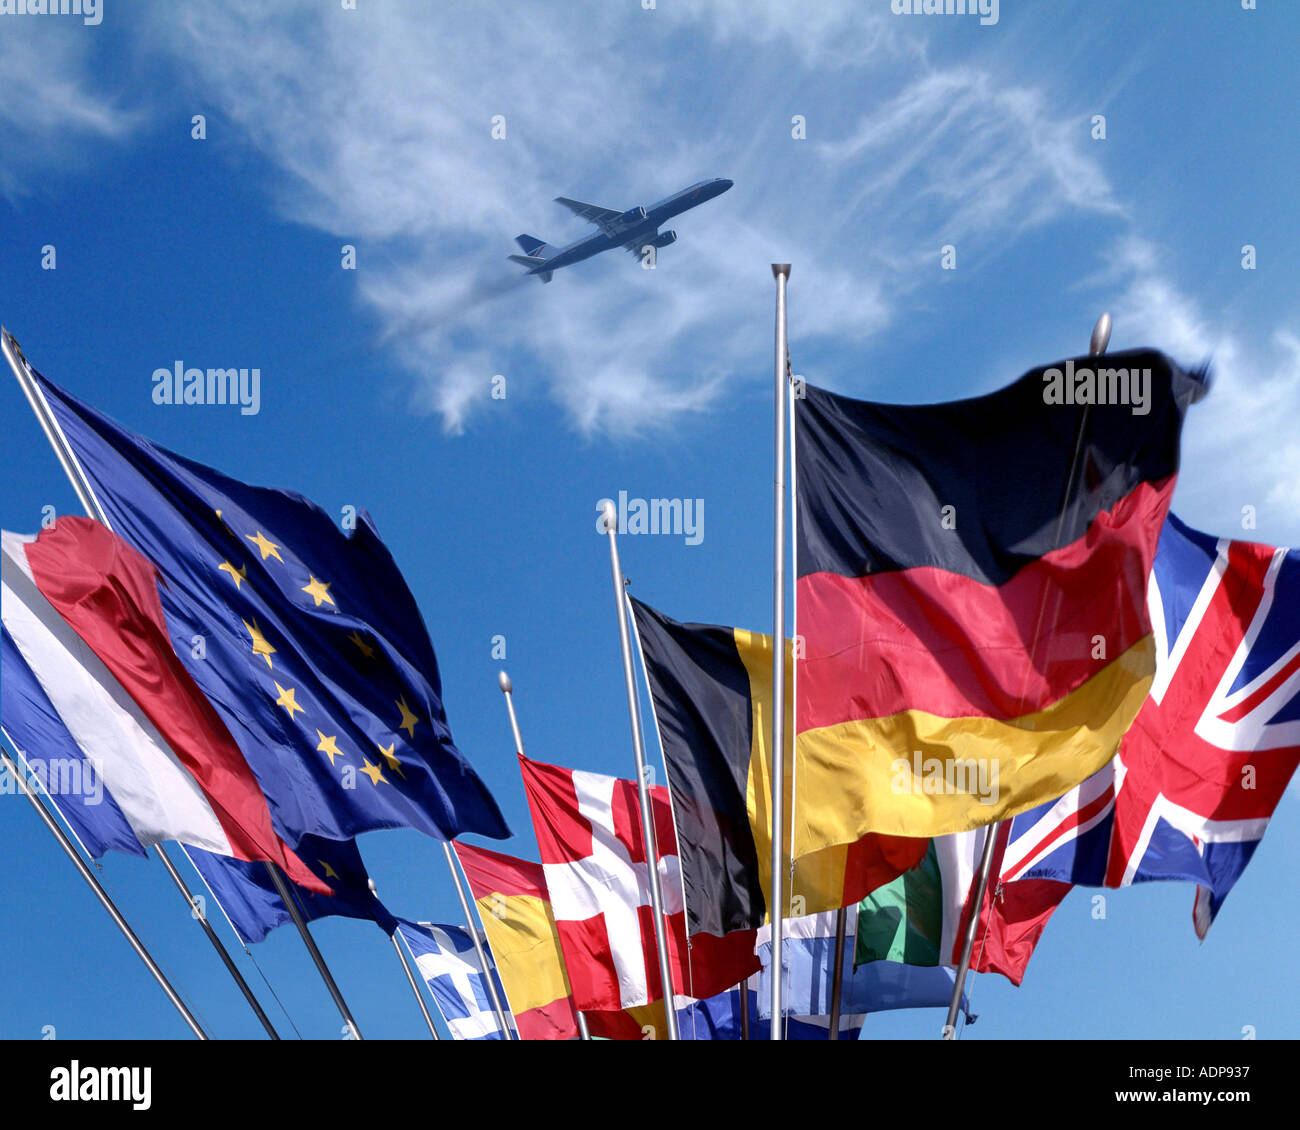 CONCEPT: The Flags of Europe - Stock Image